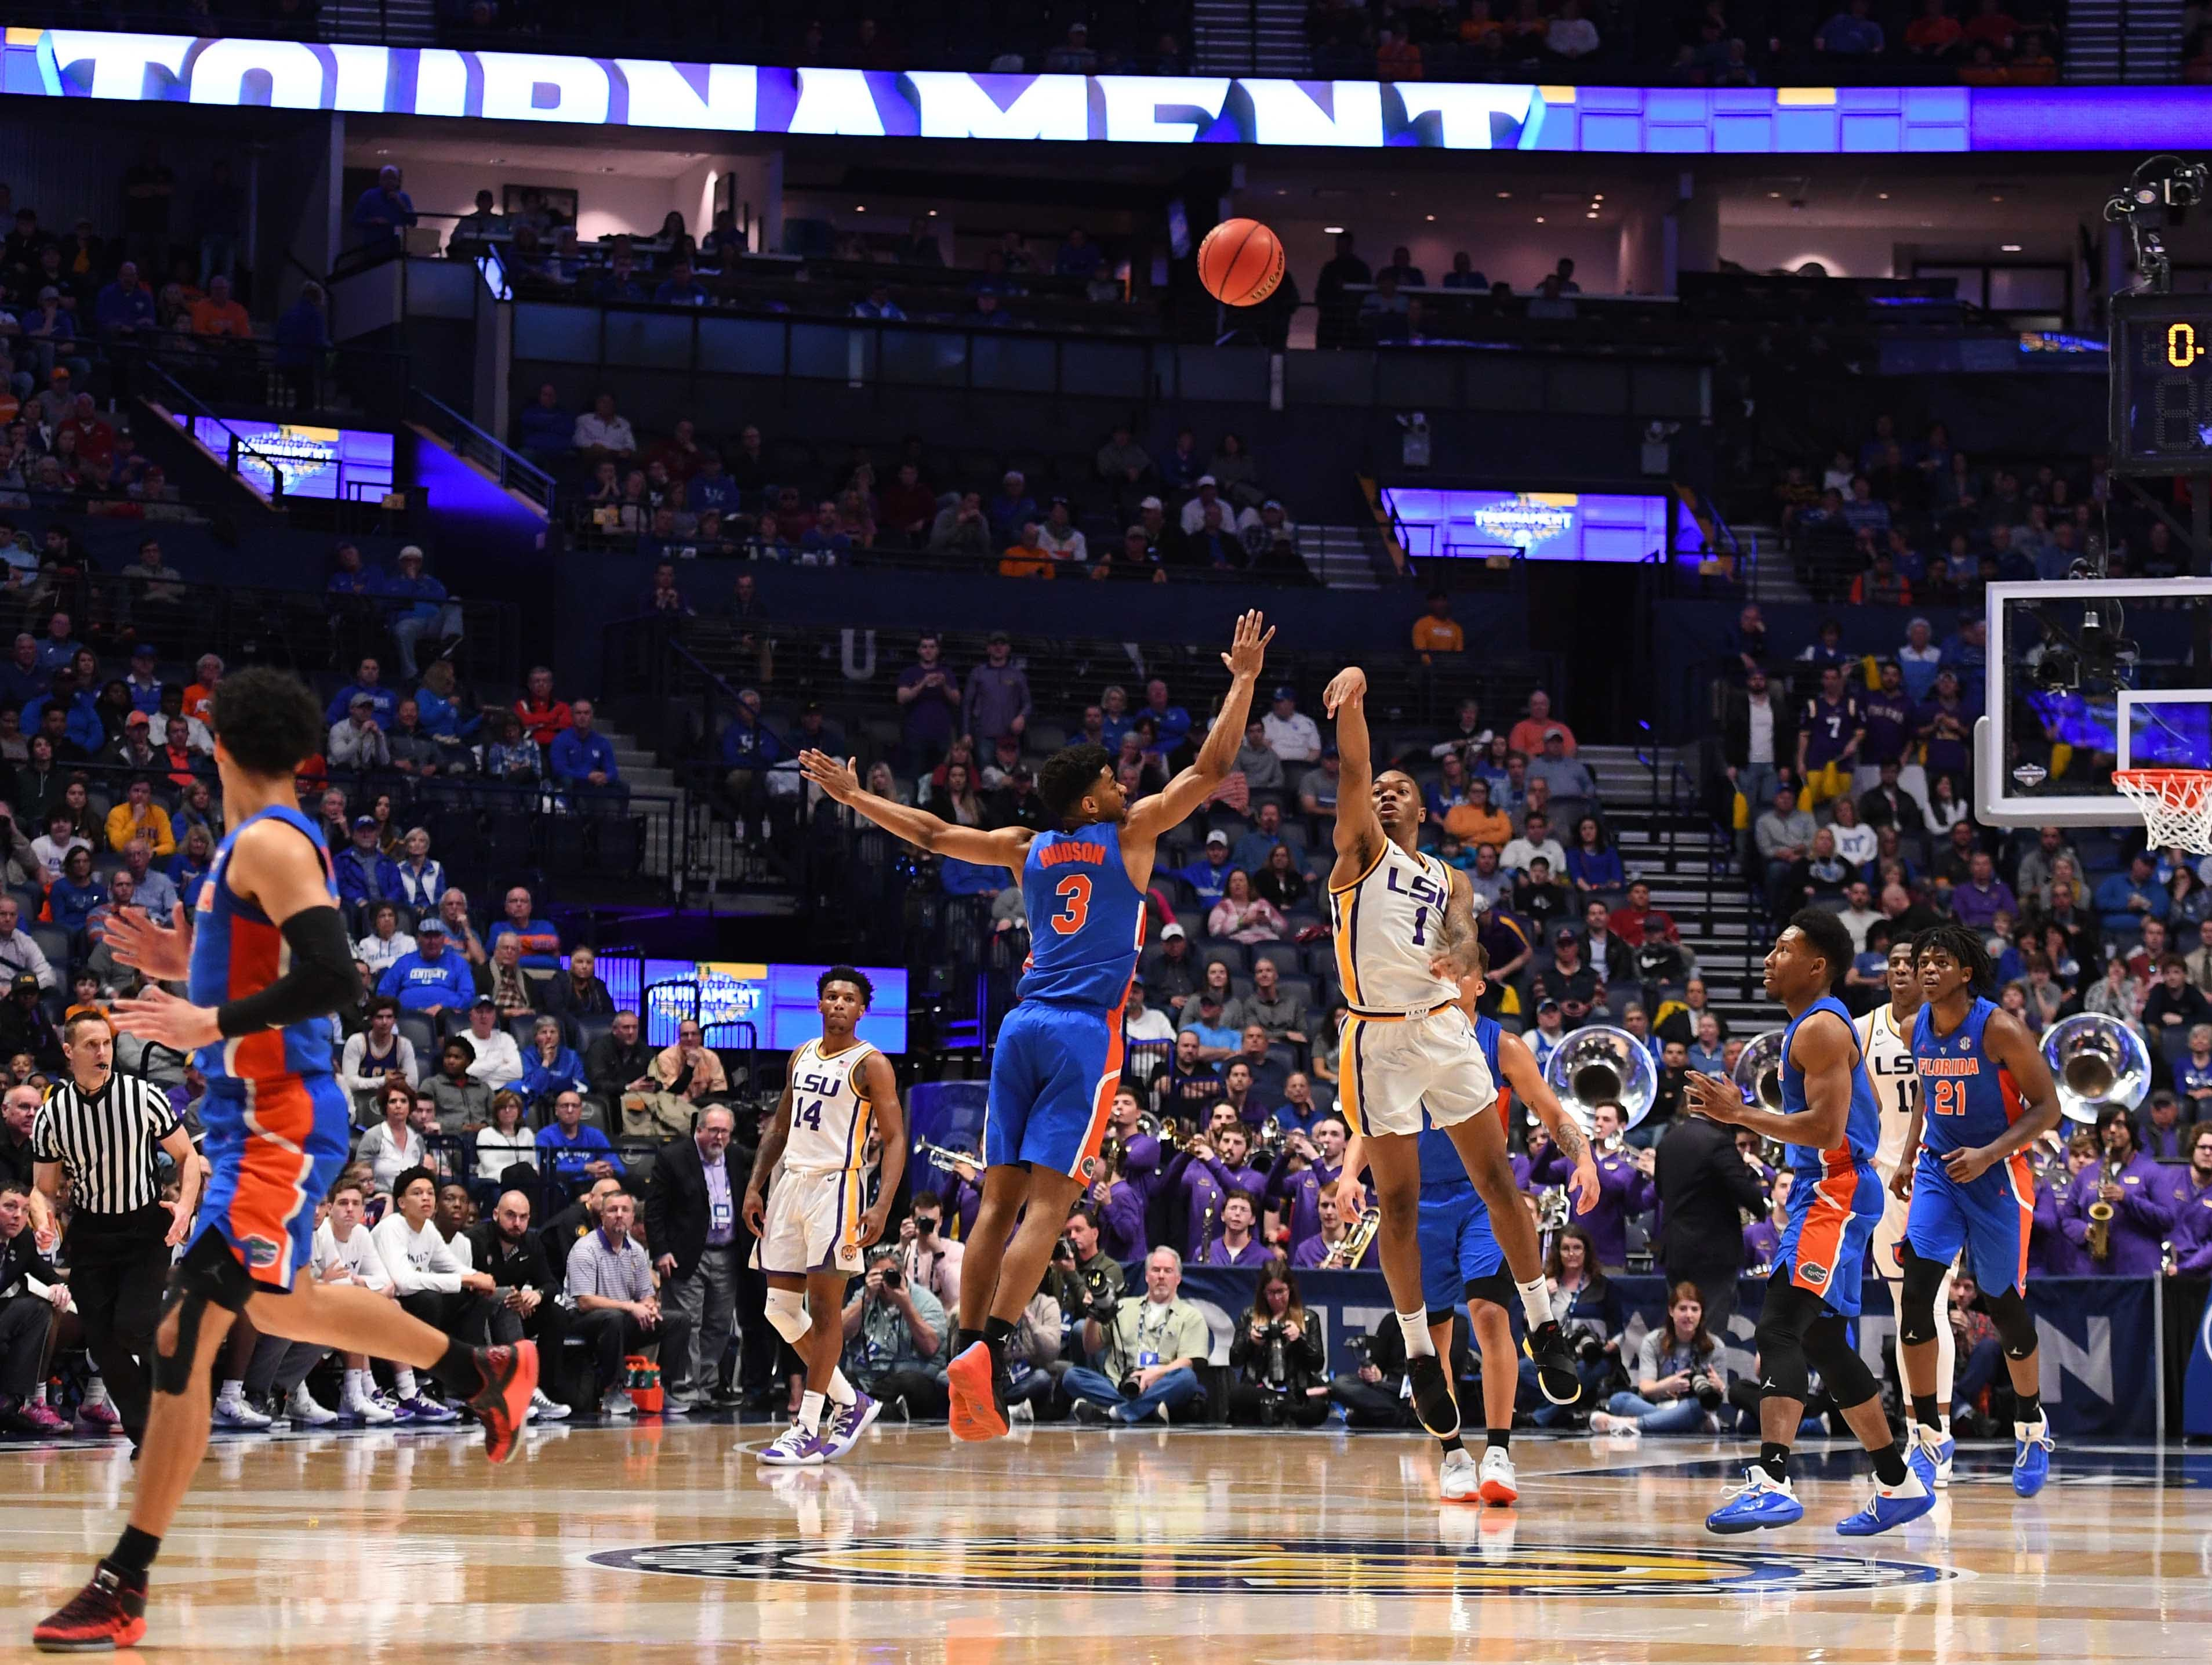 Mar 15, 2019; Nashville, TN, USA; LSU Tigers guard Javonte Smart (1) misses a shot at the end of the half against the Florida Gators in the SEC conference tournament at Bridgestone Arena. Mandatory Credit: Christopher Hanewinckel-USA TODAY Sports